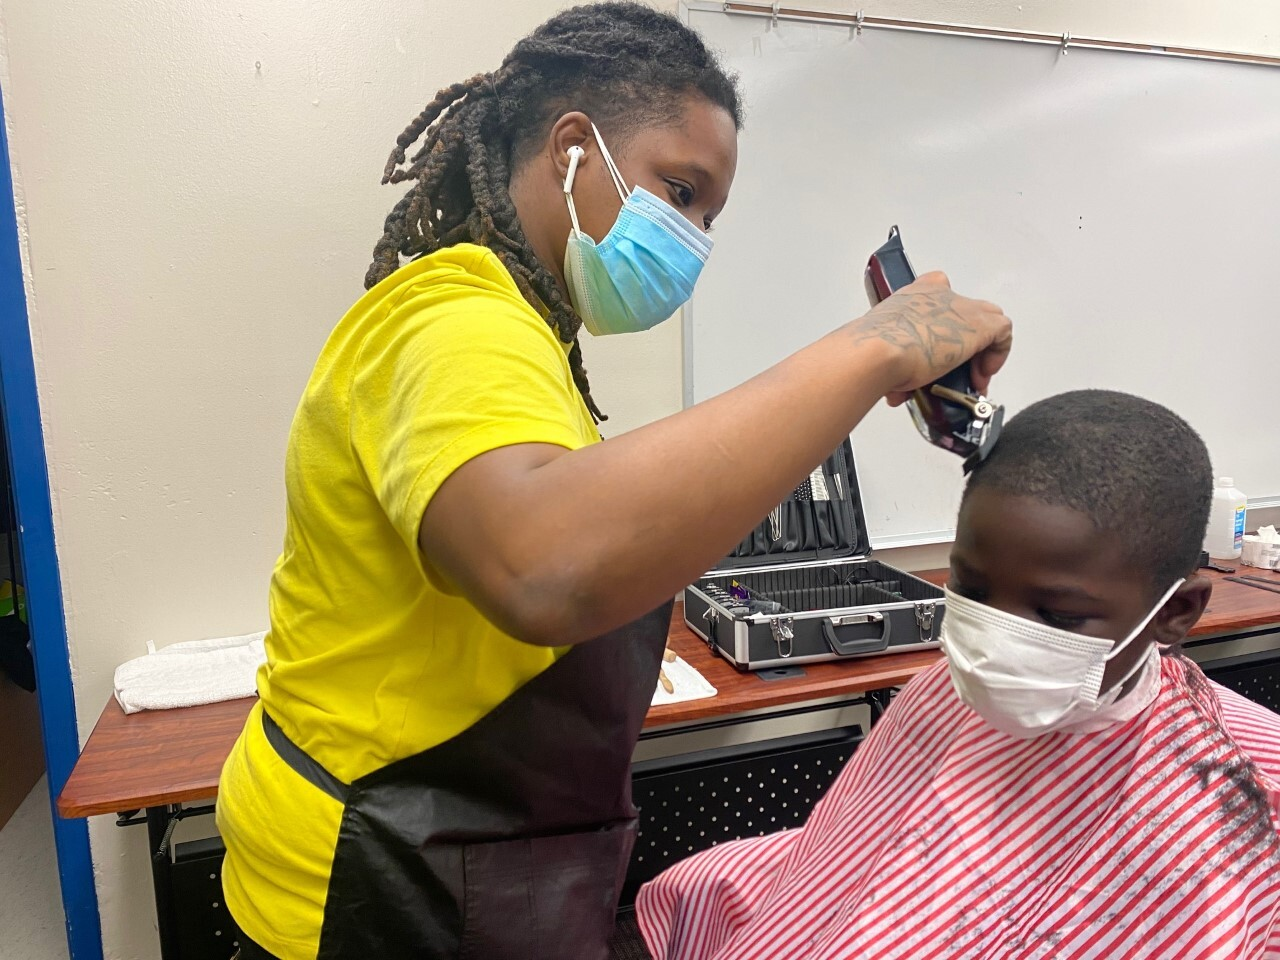 Shantell Johnson cutting hair at Sabal Palm Elementary School